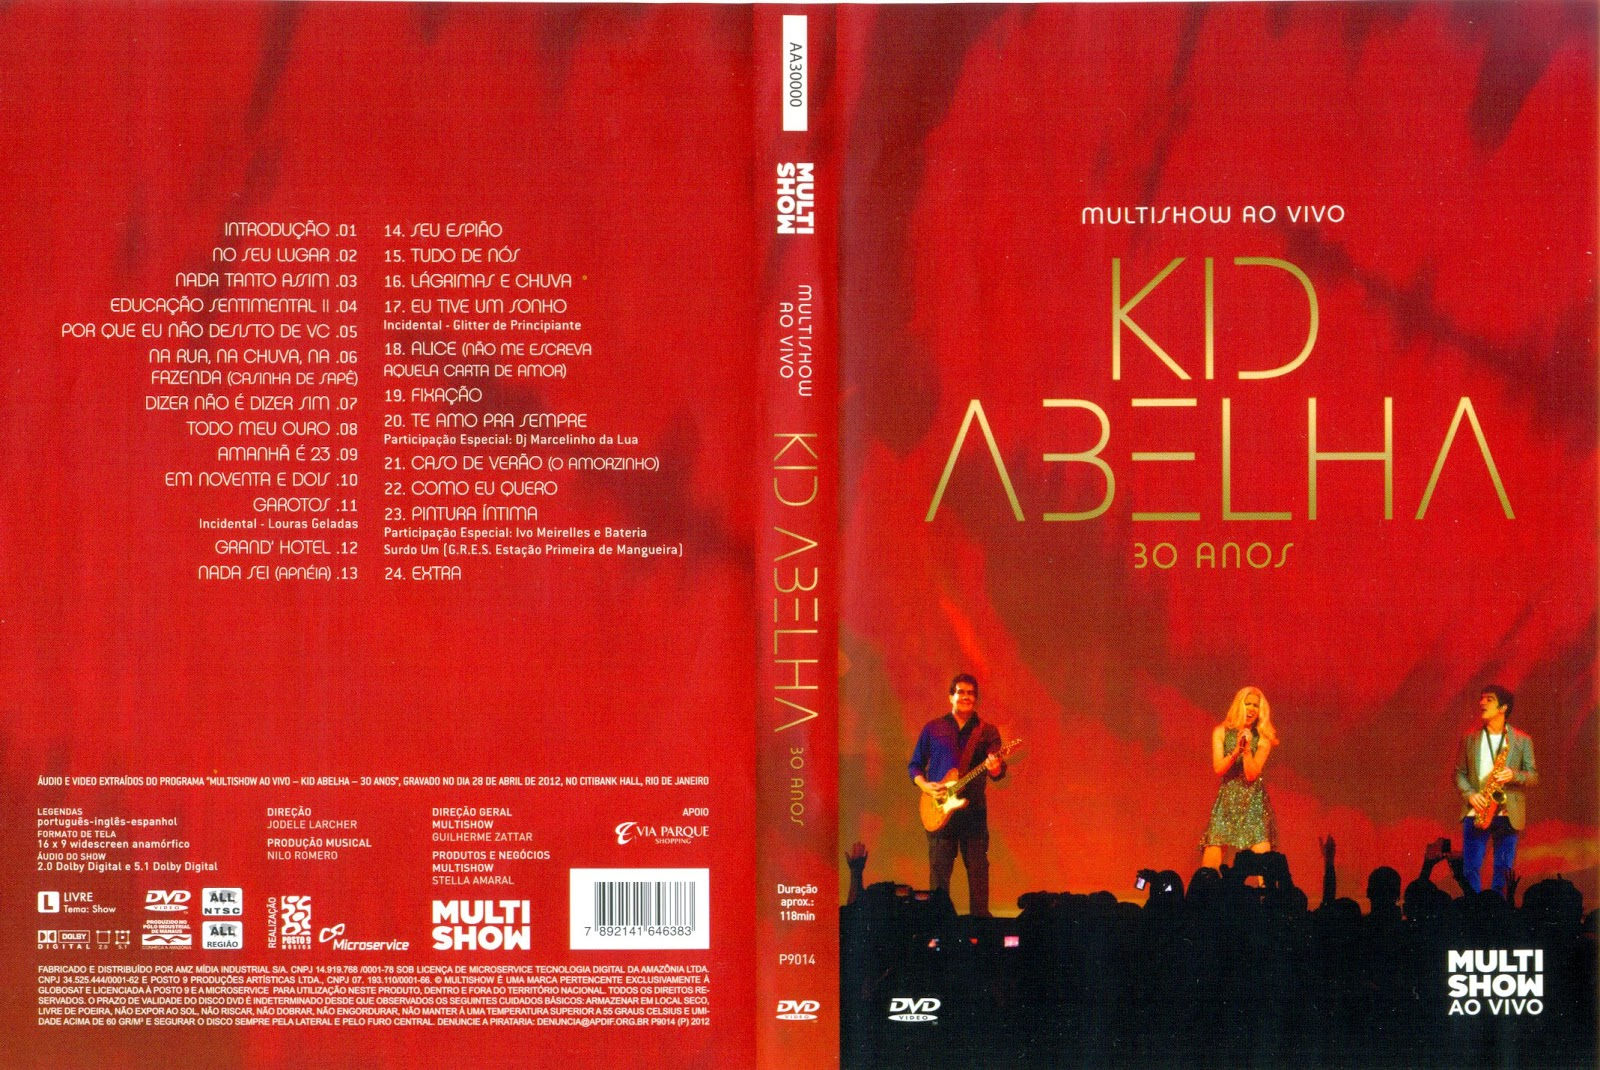 Download Kid Abelha 30 Anos Multishow 720p HDTV x264 2012 Kid Abelha 30 Anos